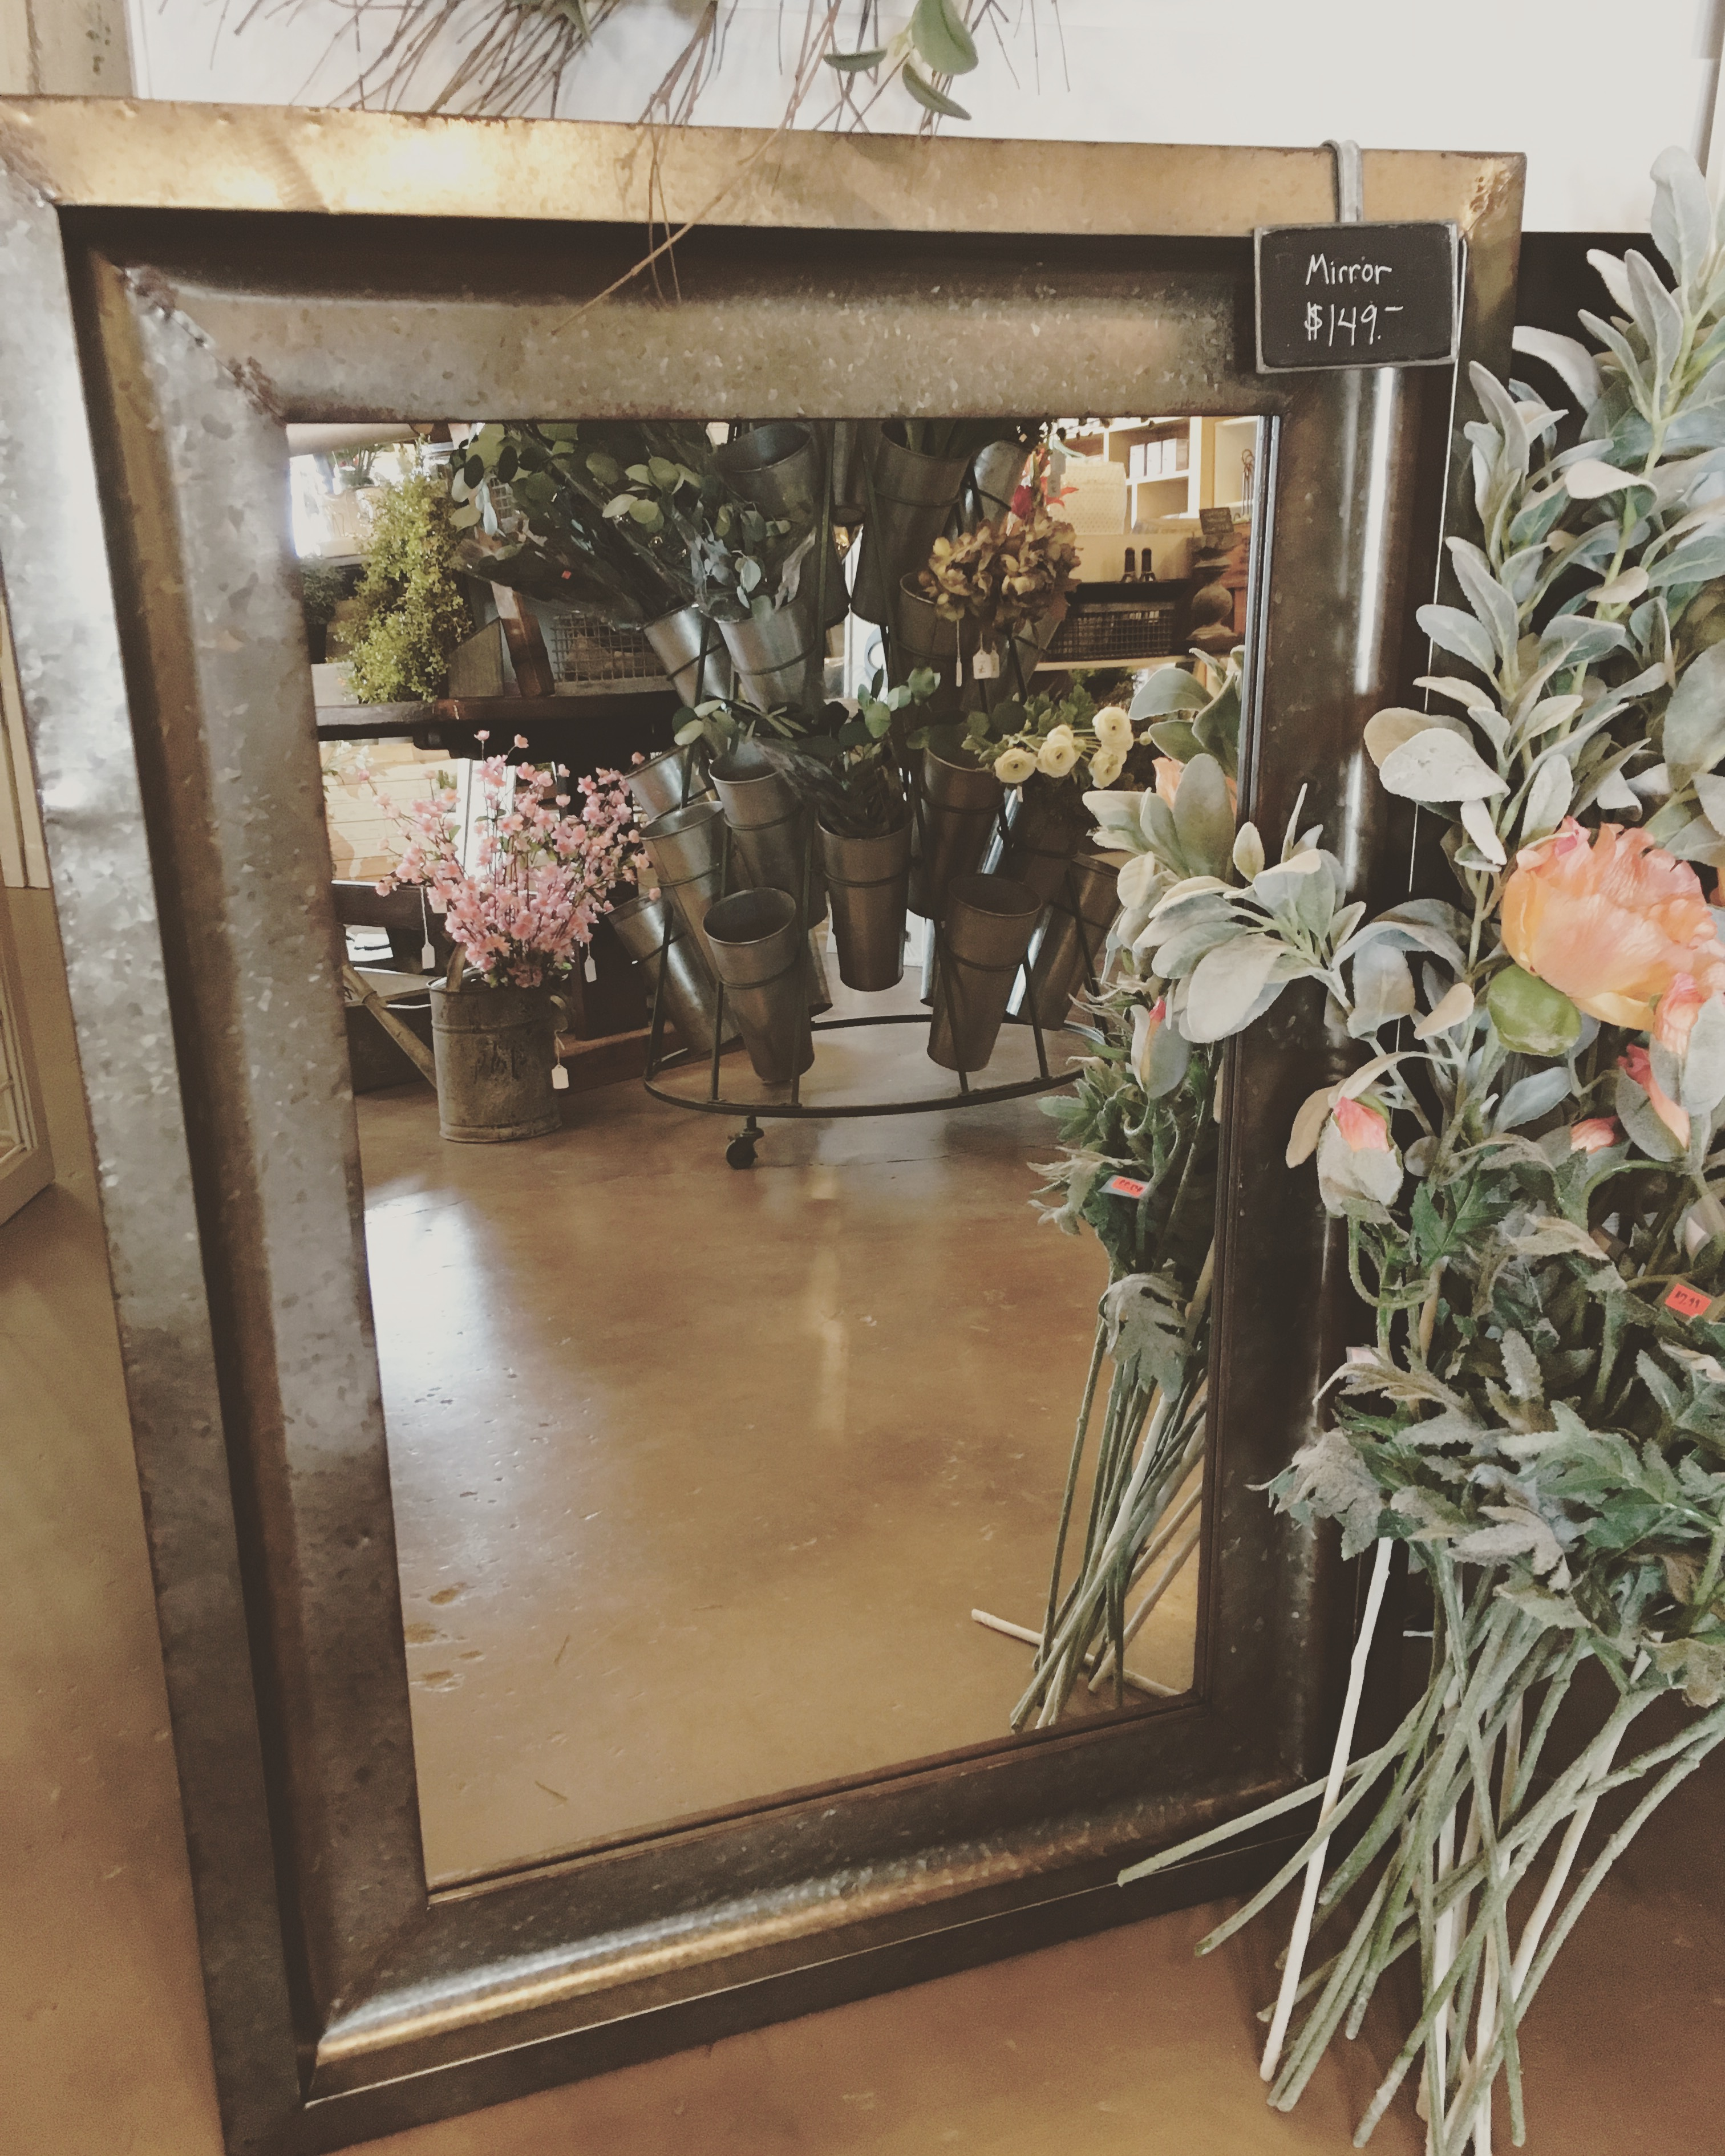 Tin Framed Mirror, $149.00